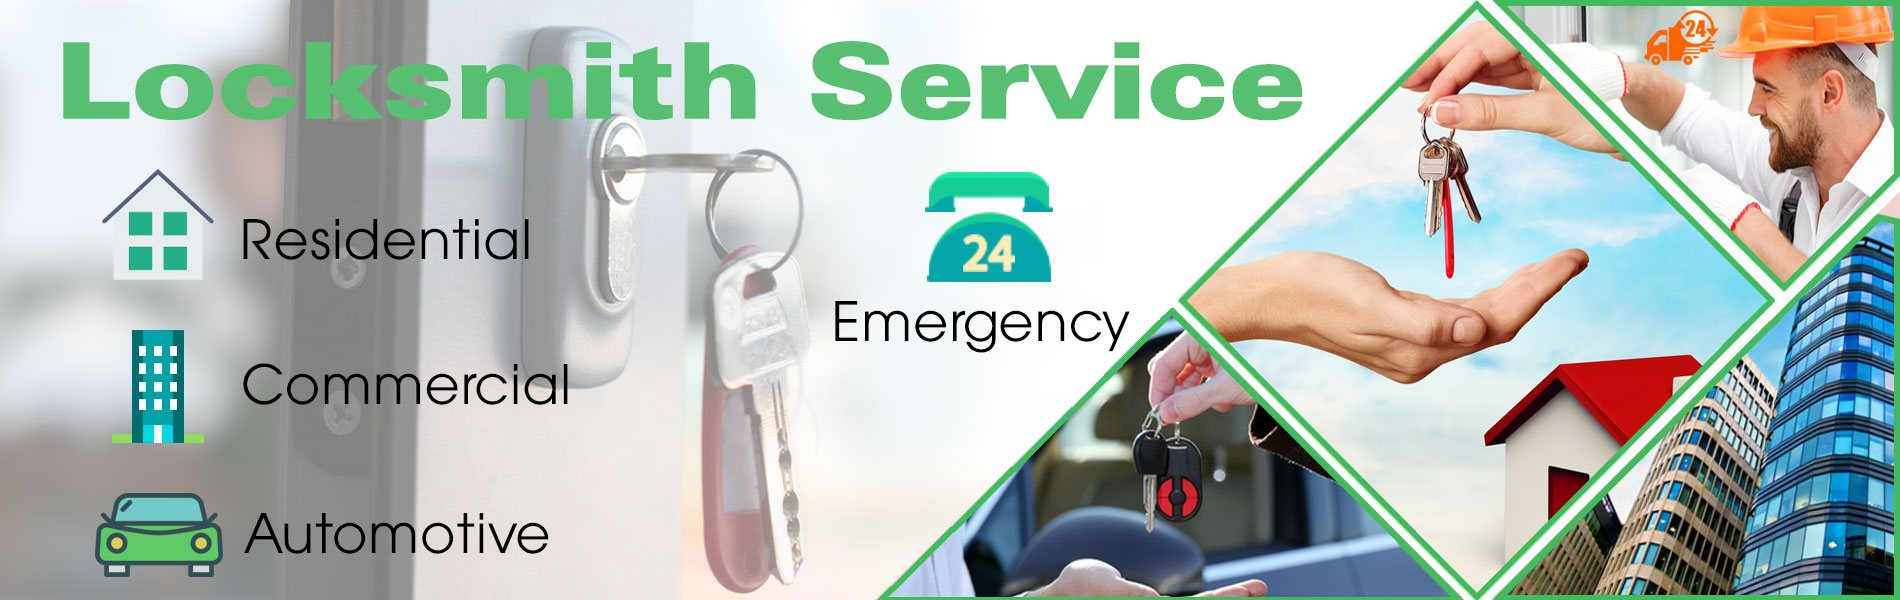 Lock Safe Services San Jose, CA 408-876-6285